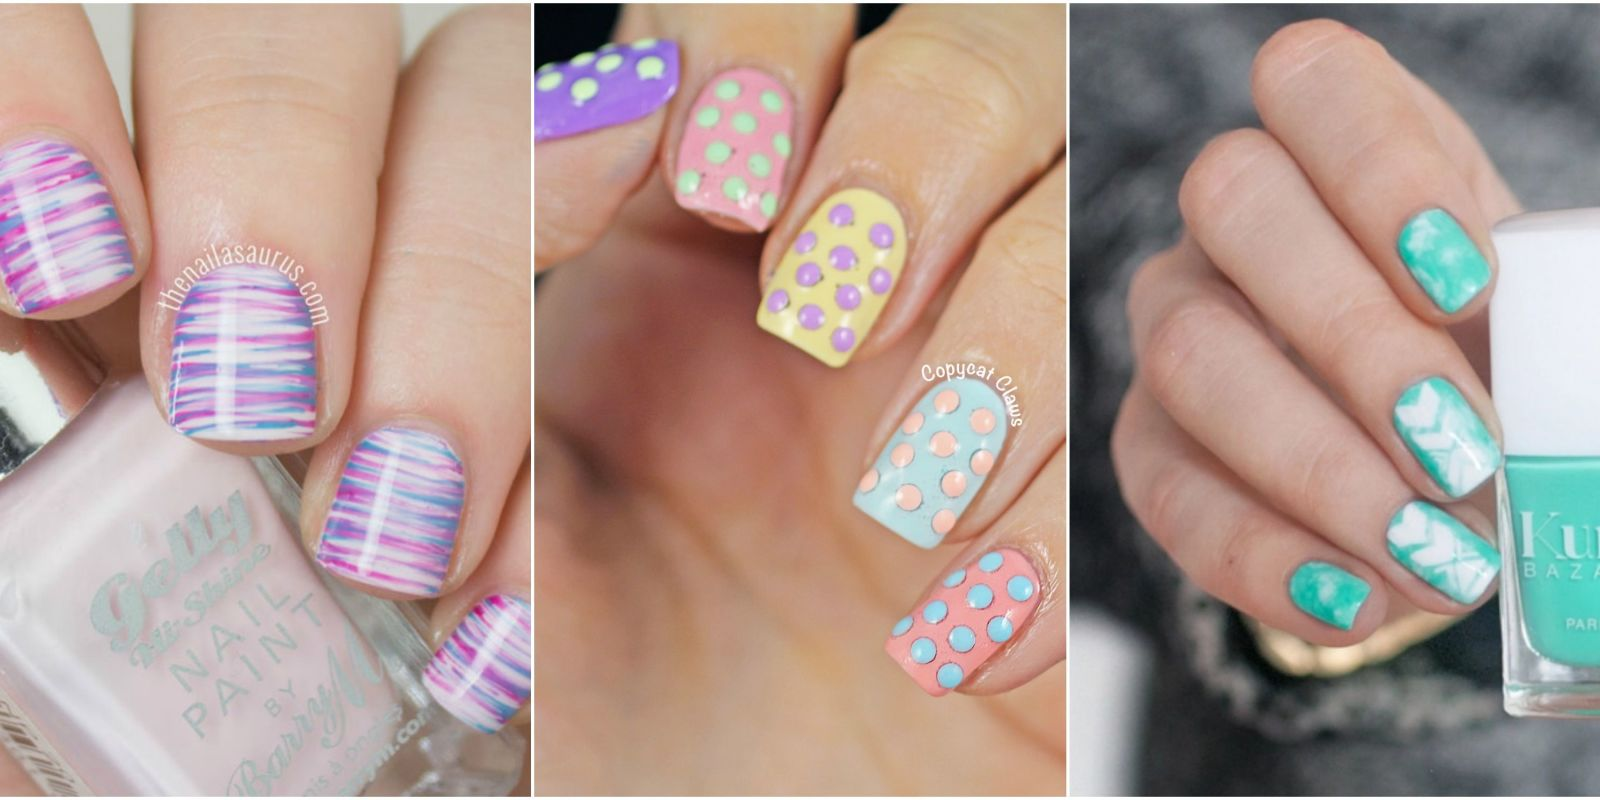 easy at home nail designs for short nails.  21 Cute Easter Nail Designs Easy Art Ideas